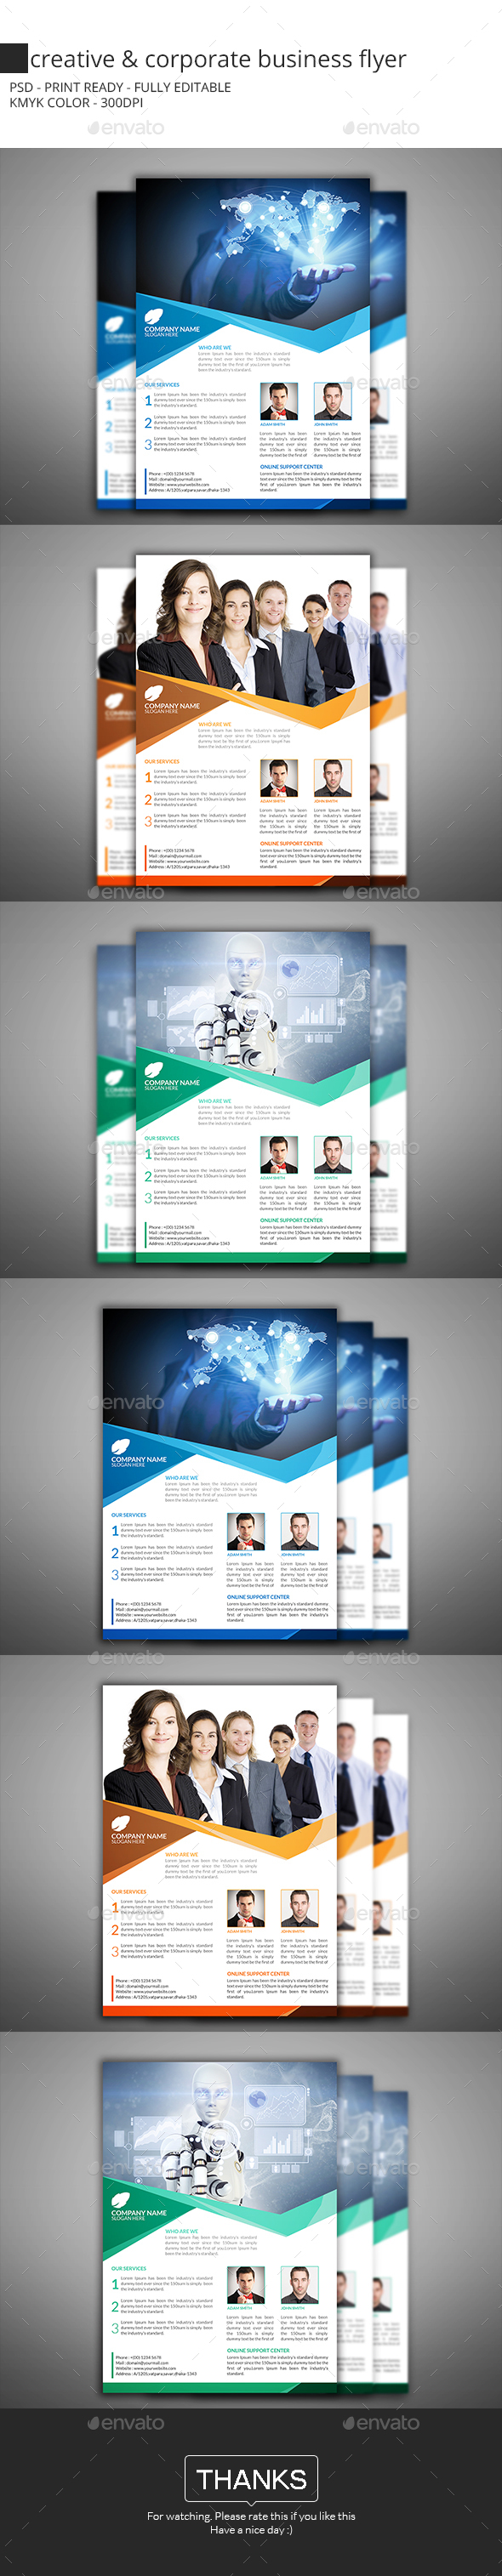 Creative & Corporate Business Flyer - Flyers Print Templates